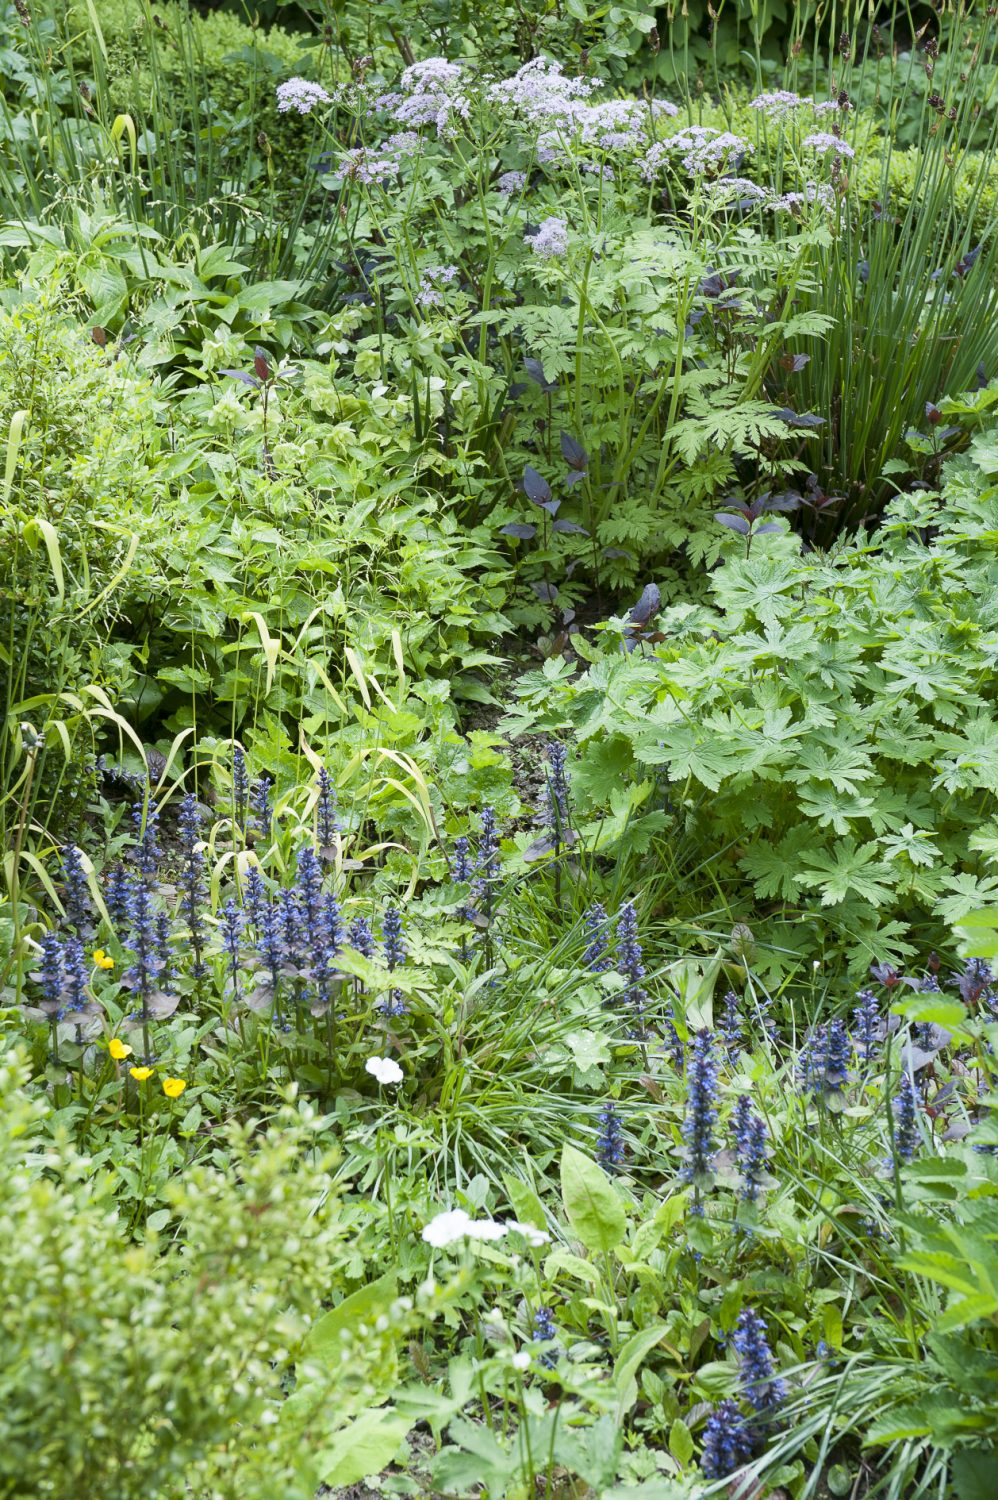 The garden has two main aspects: an open, sunny side in front of the kitchen window that leads down to the vegetable patch and a wonderful shady slope behind the house